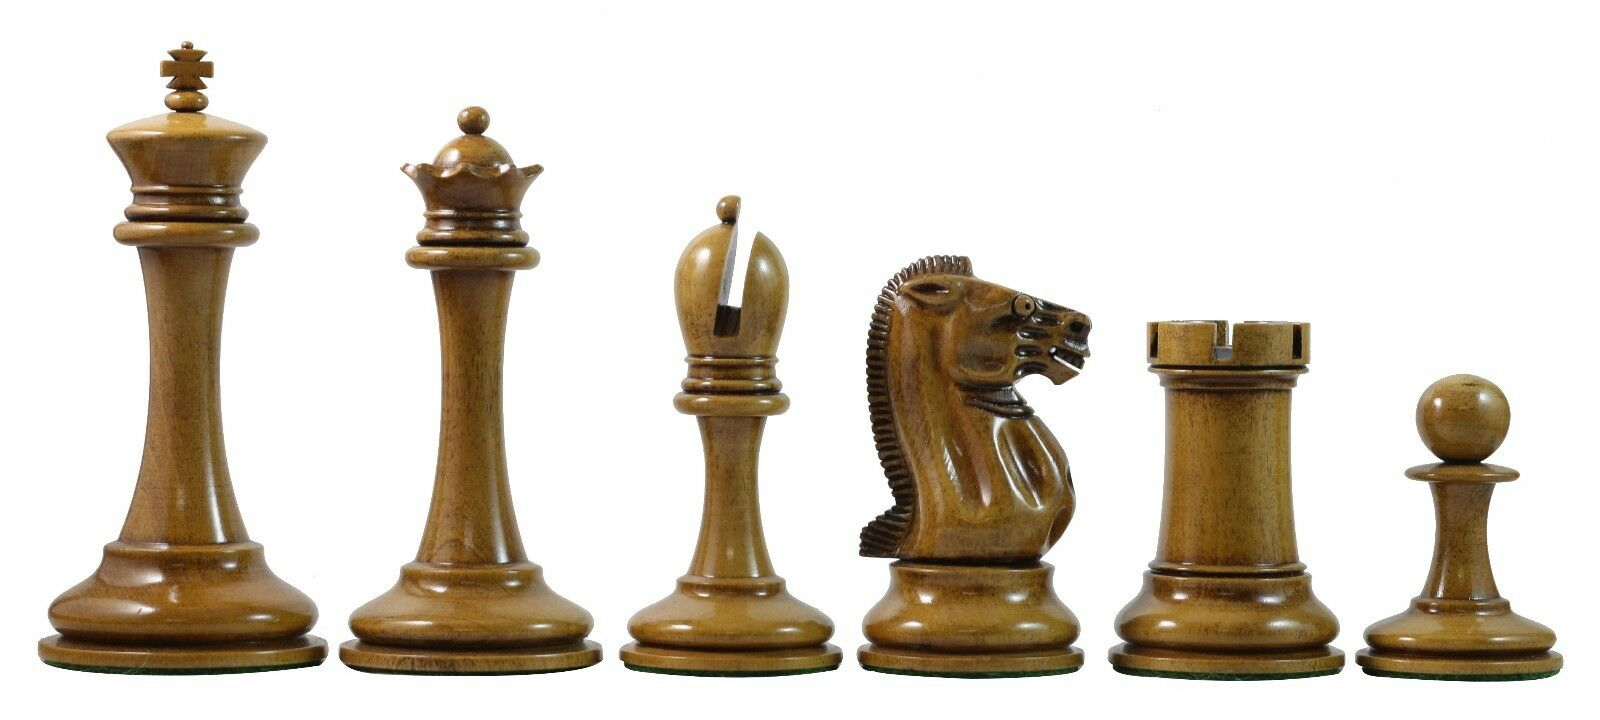 B & Company Reproduction Distressed Antiqued Staunton 4.4  Ebony Chess Pieces